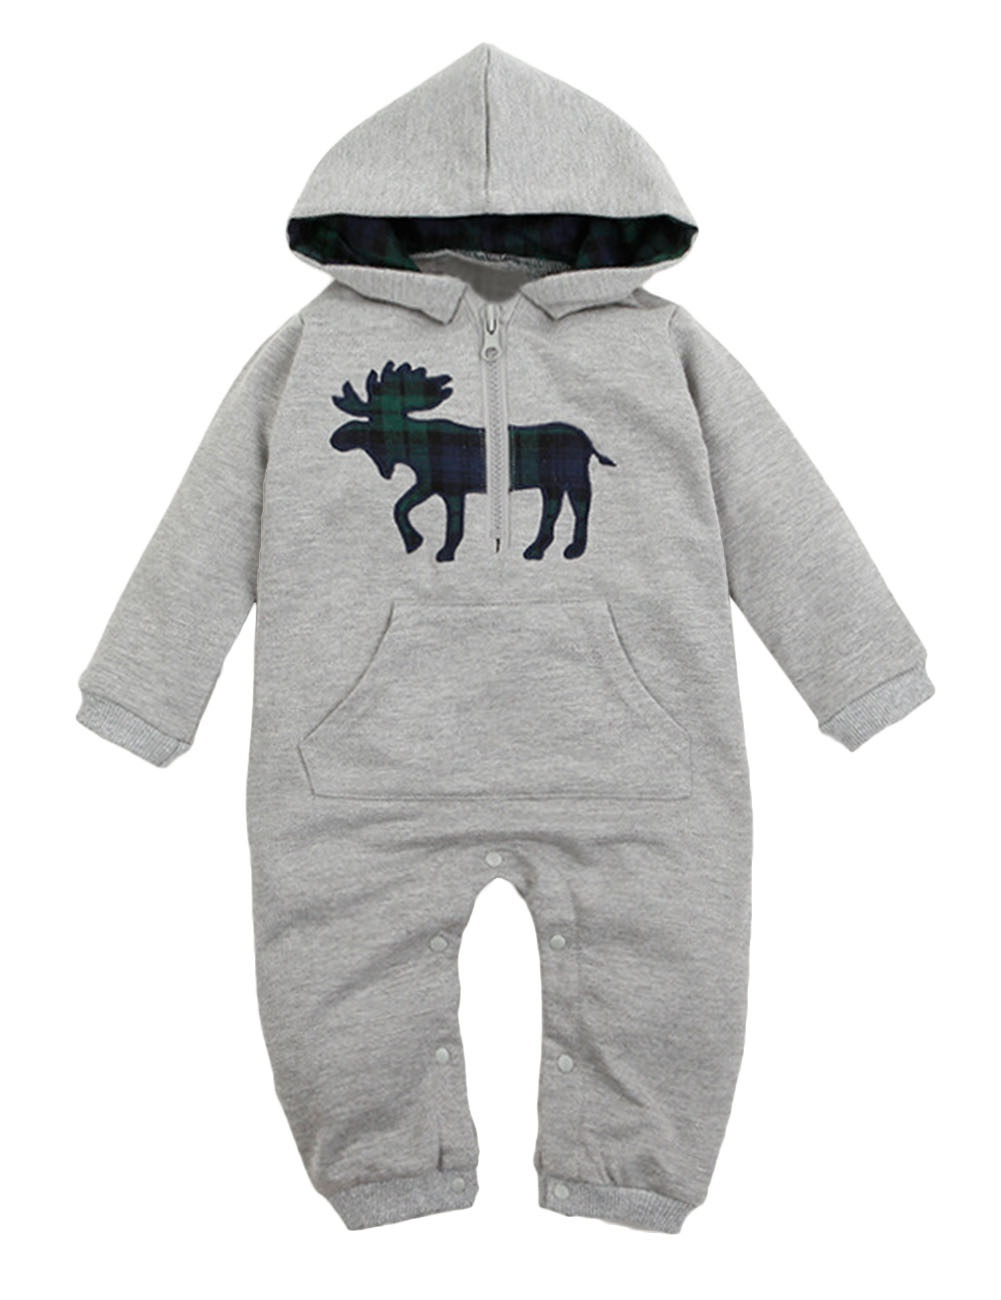 Kids Autumn and Winter Warm Hooded Cartoon Patch Pocket Infant Rompers Jumpsuit